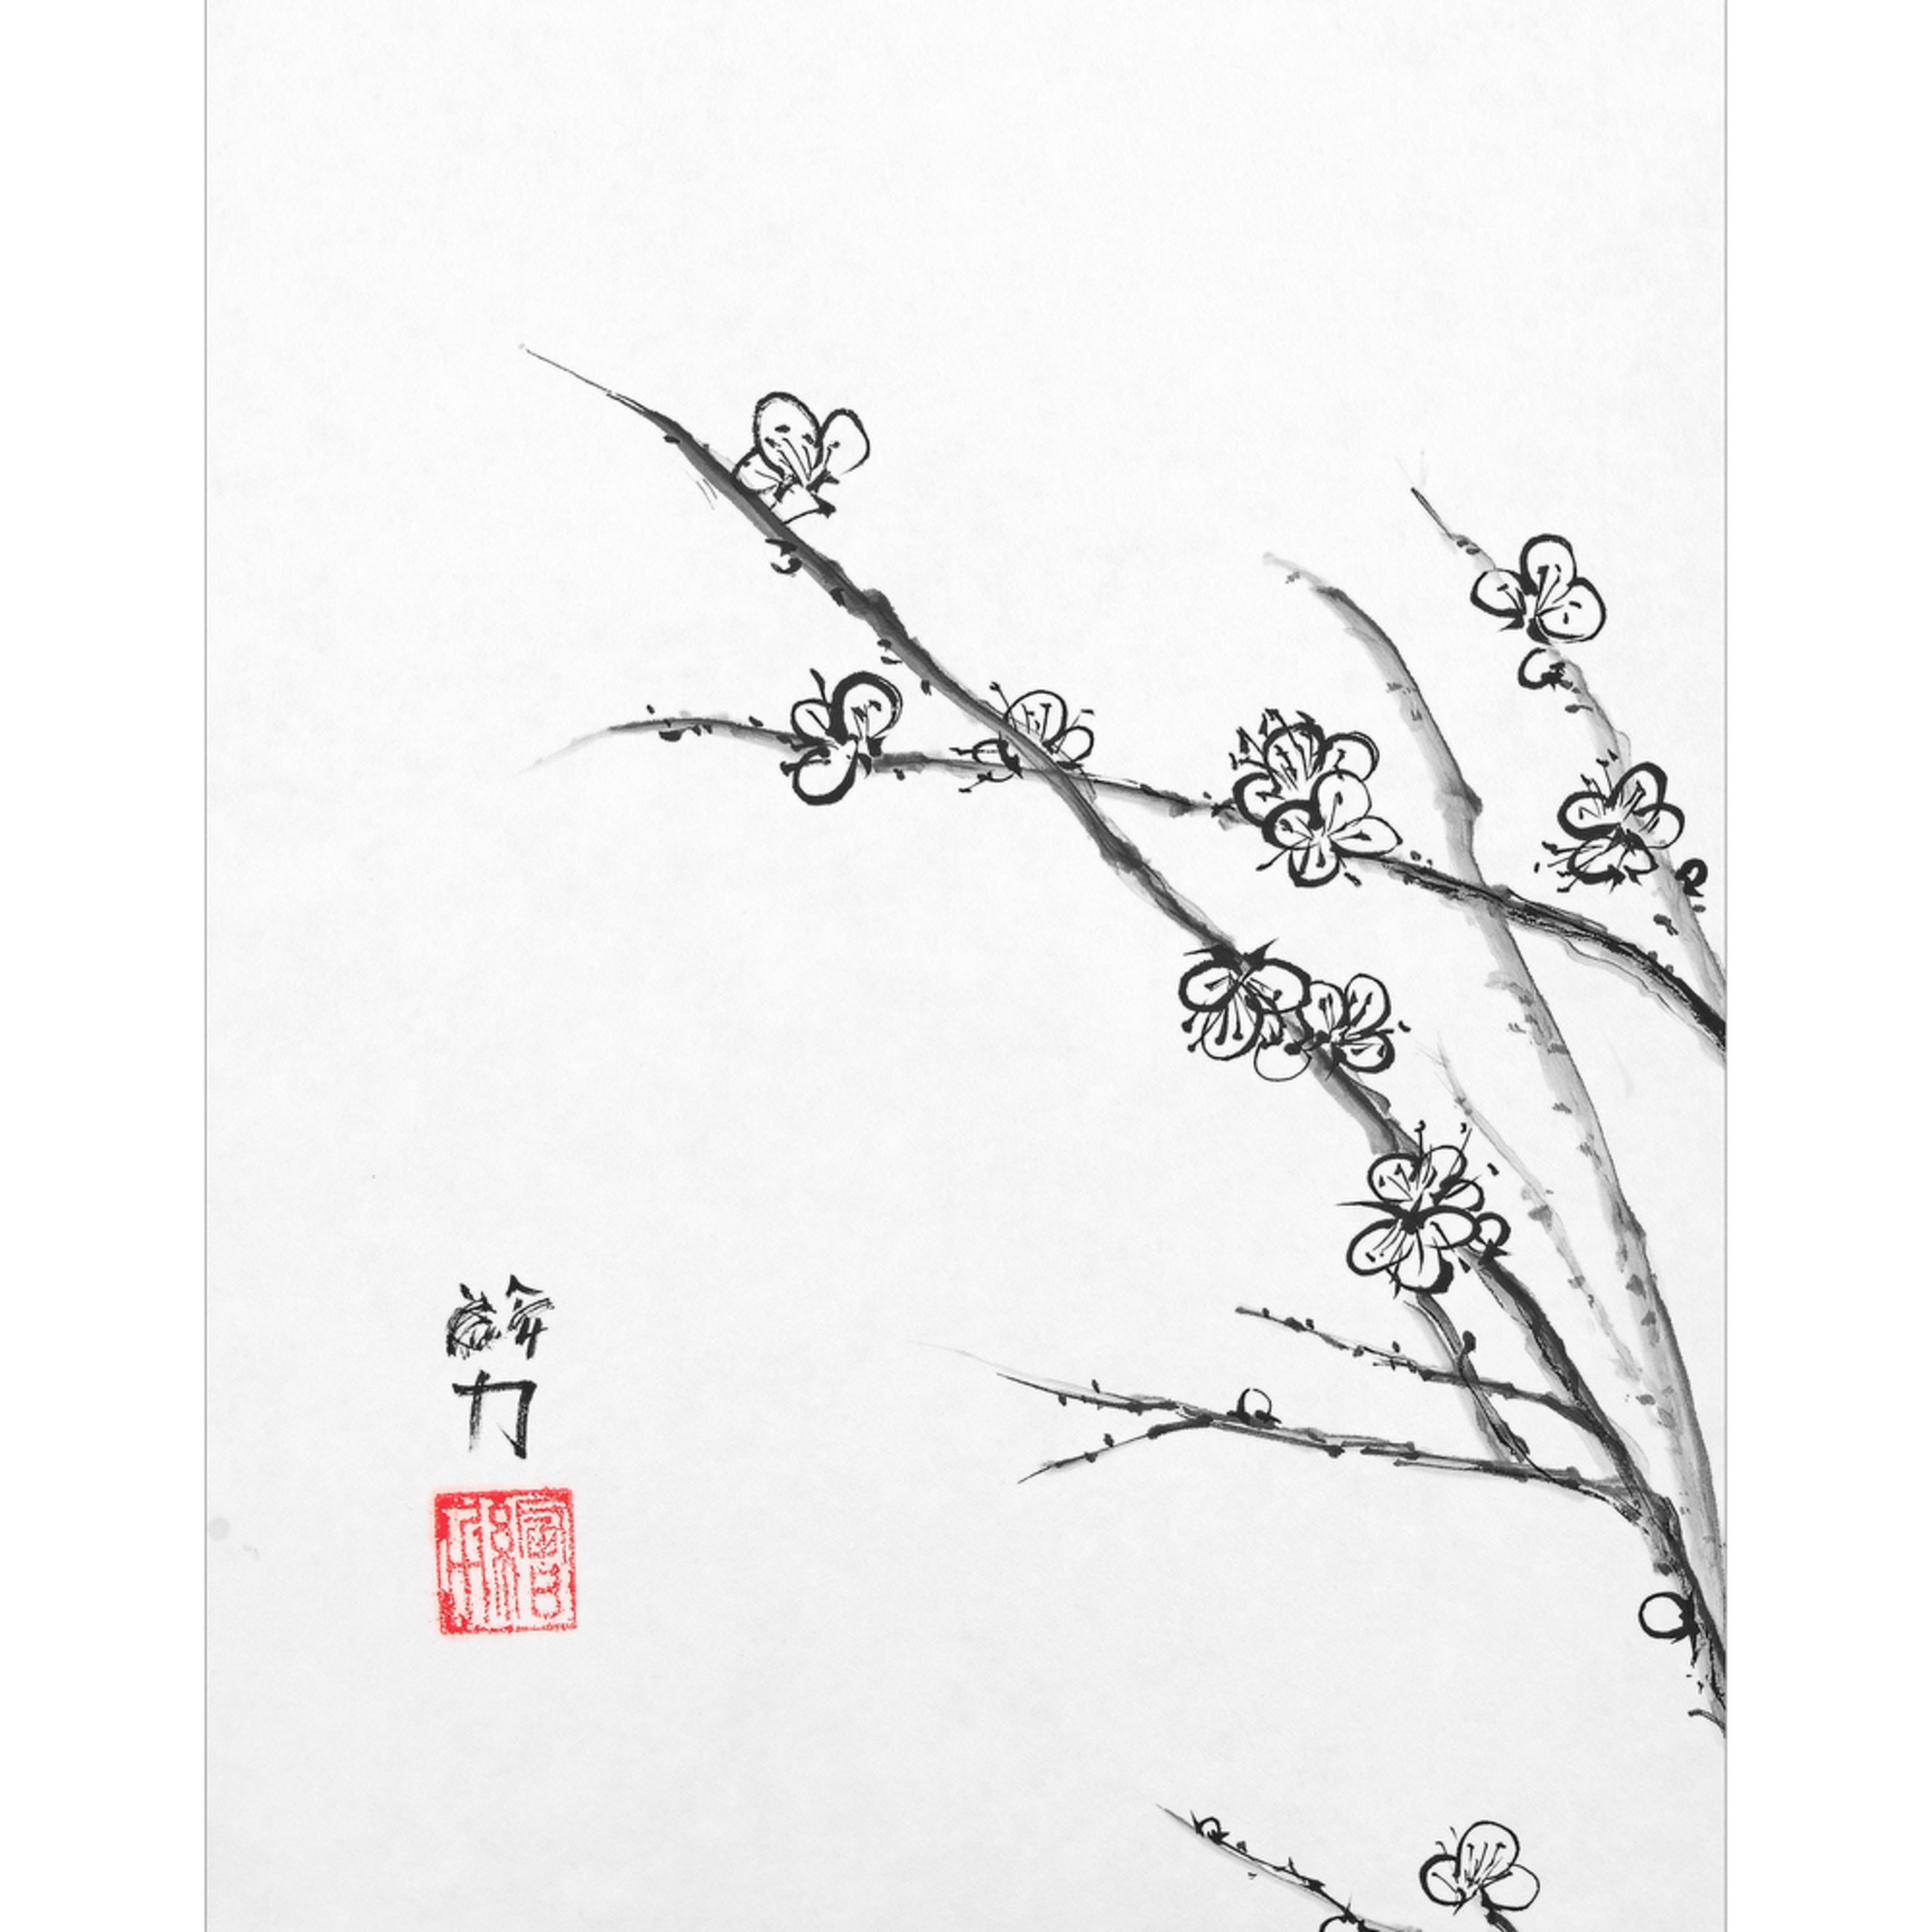 Hombretheartist sumie plumblossom 3 forprint 111219 xd5mbf